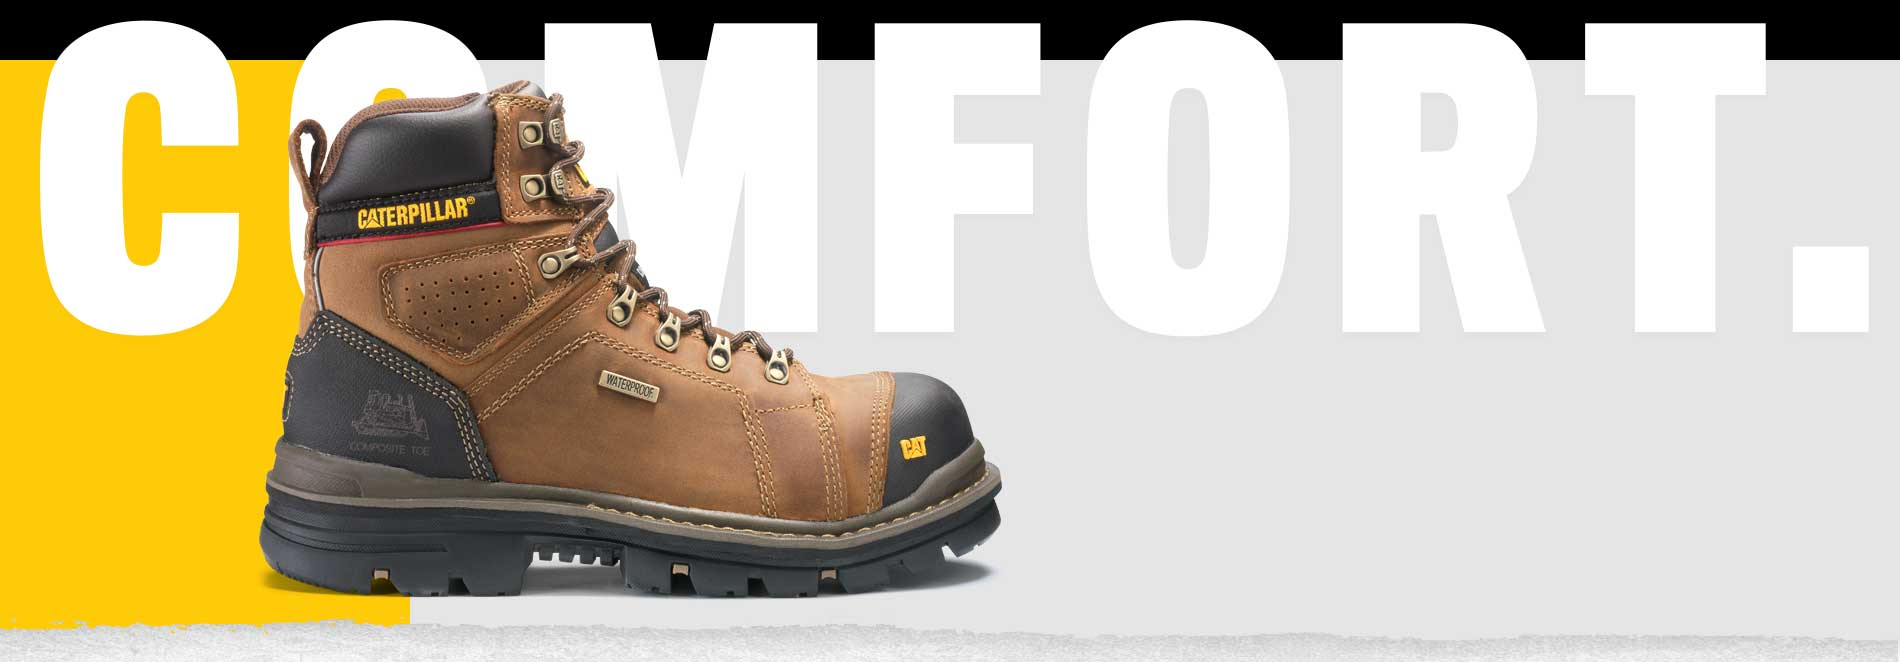 caterpillar work boots comfortable work shoes cat footwear